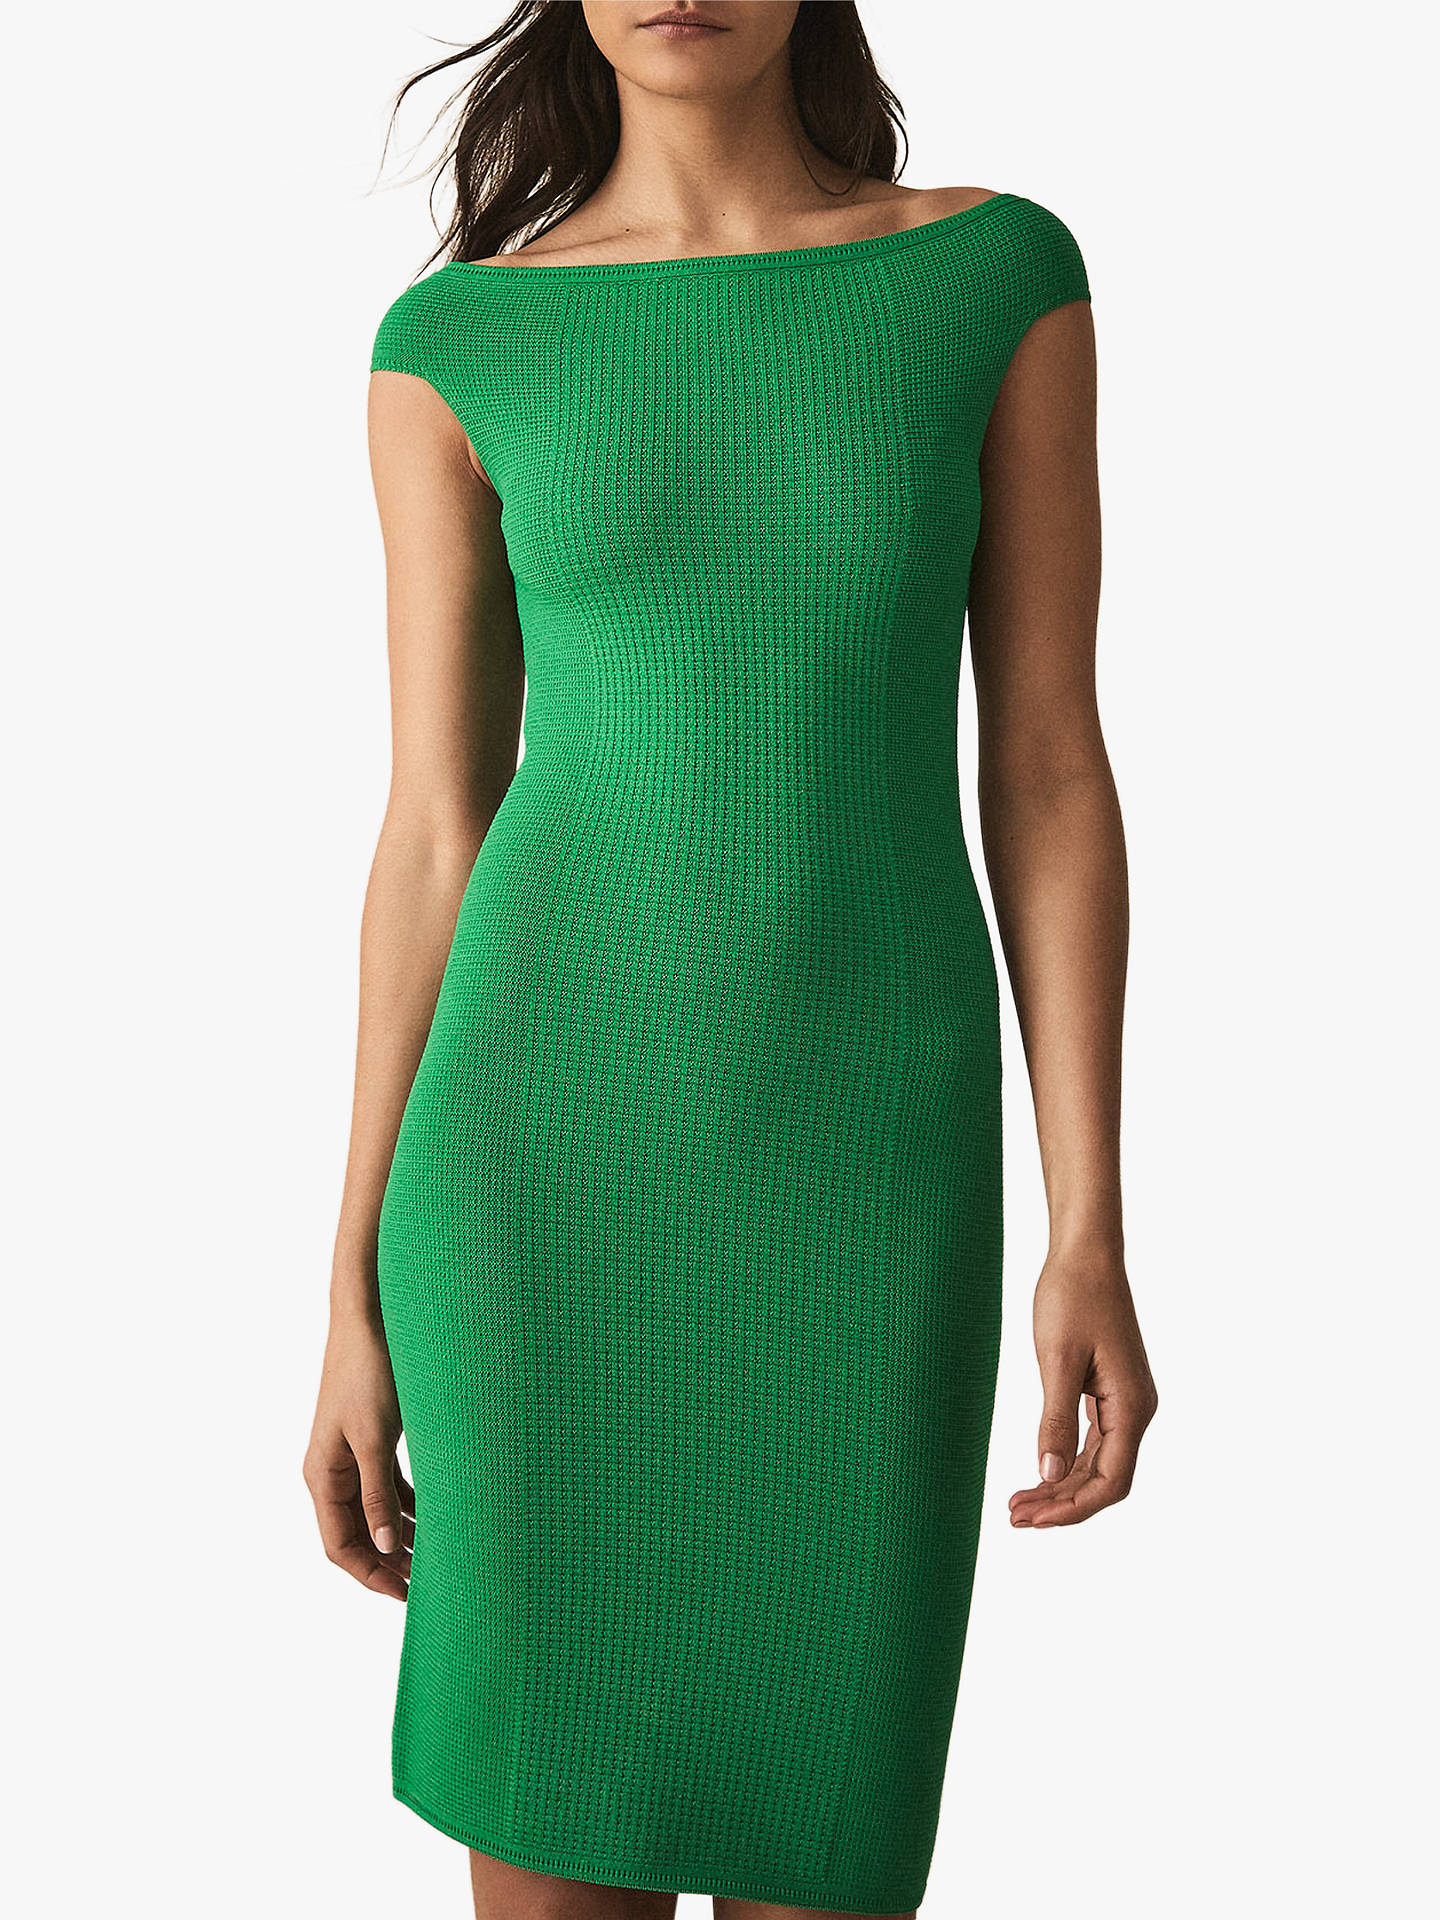 2461f93a50ab42 Reiss Pippa Textured Knitted Dress at John Lewis   Partners